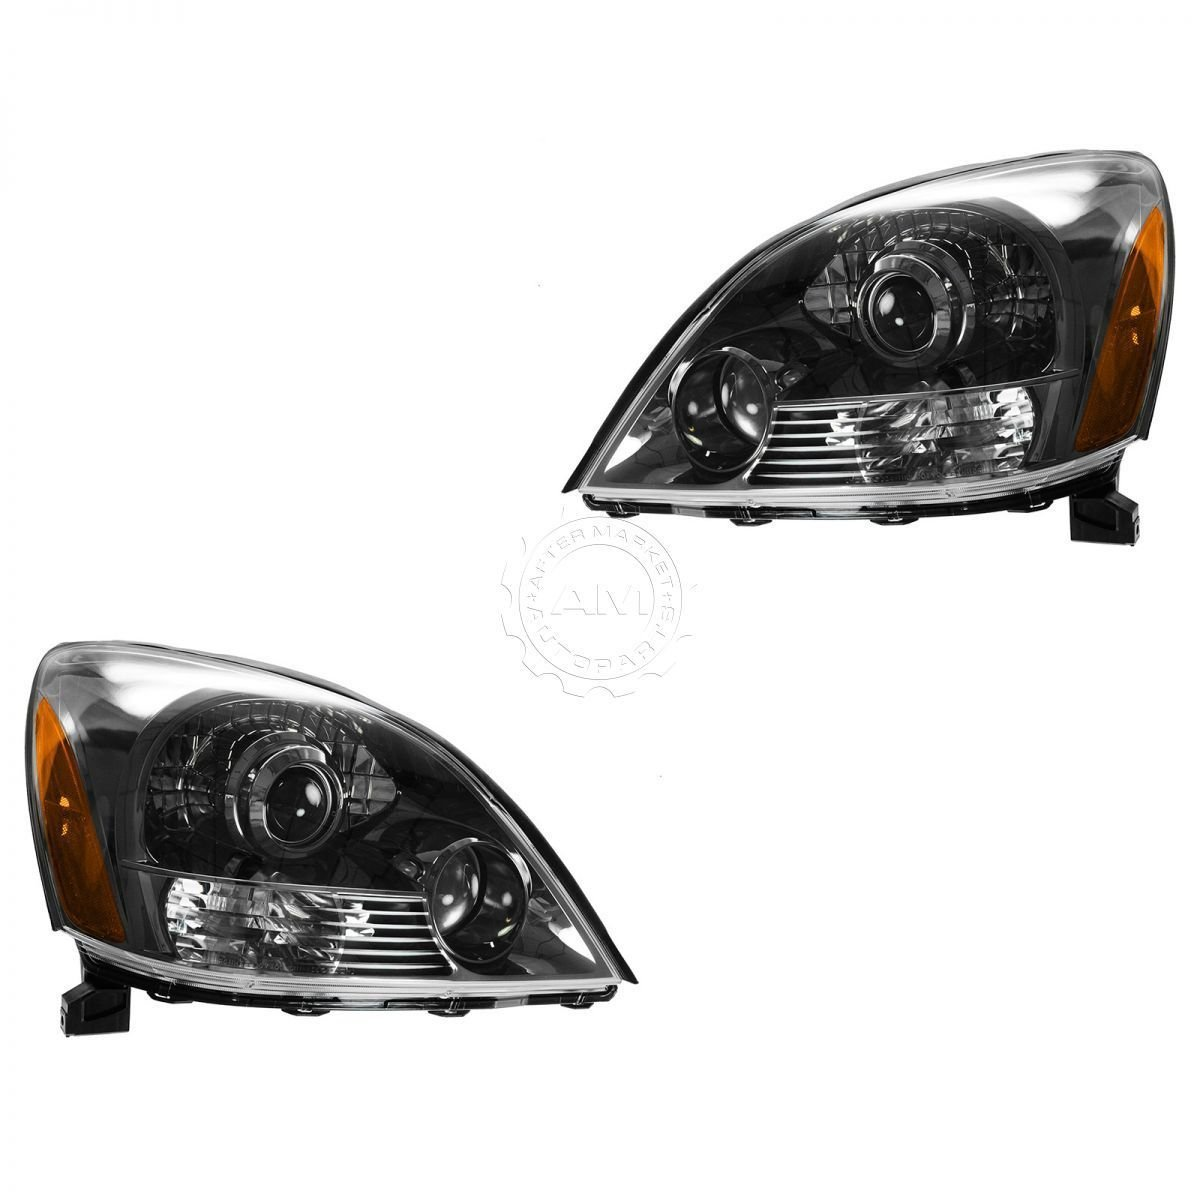 New Headlight Headlamp LH and RH Pair Set for 2 for 03-09 Lexus GX470 Sport Package